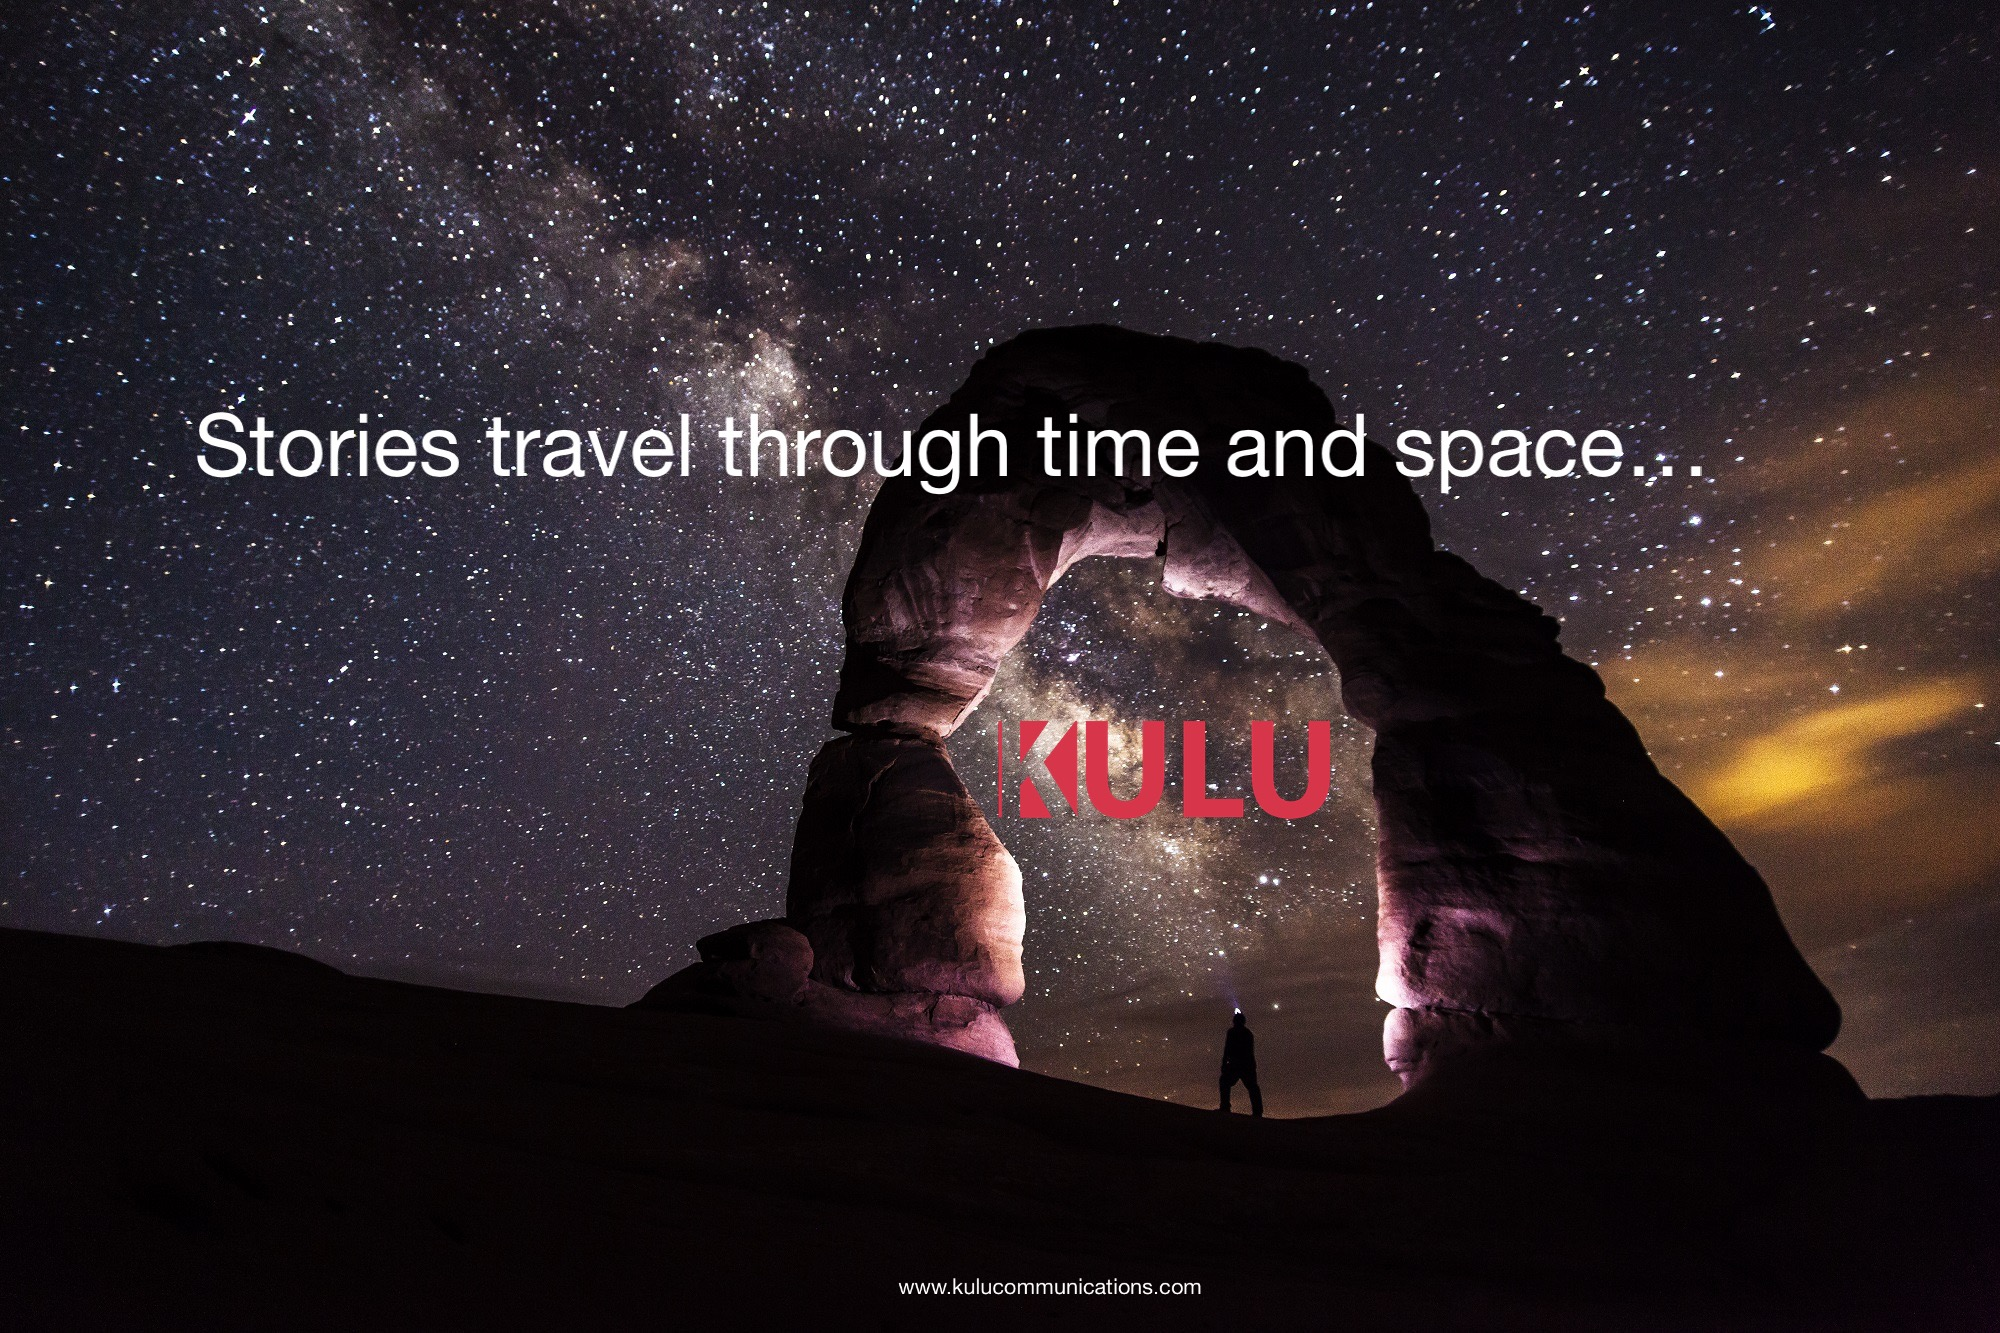 KULU-stories-travel-through-time-and-space1.jpg